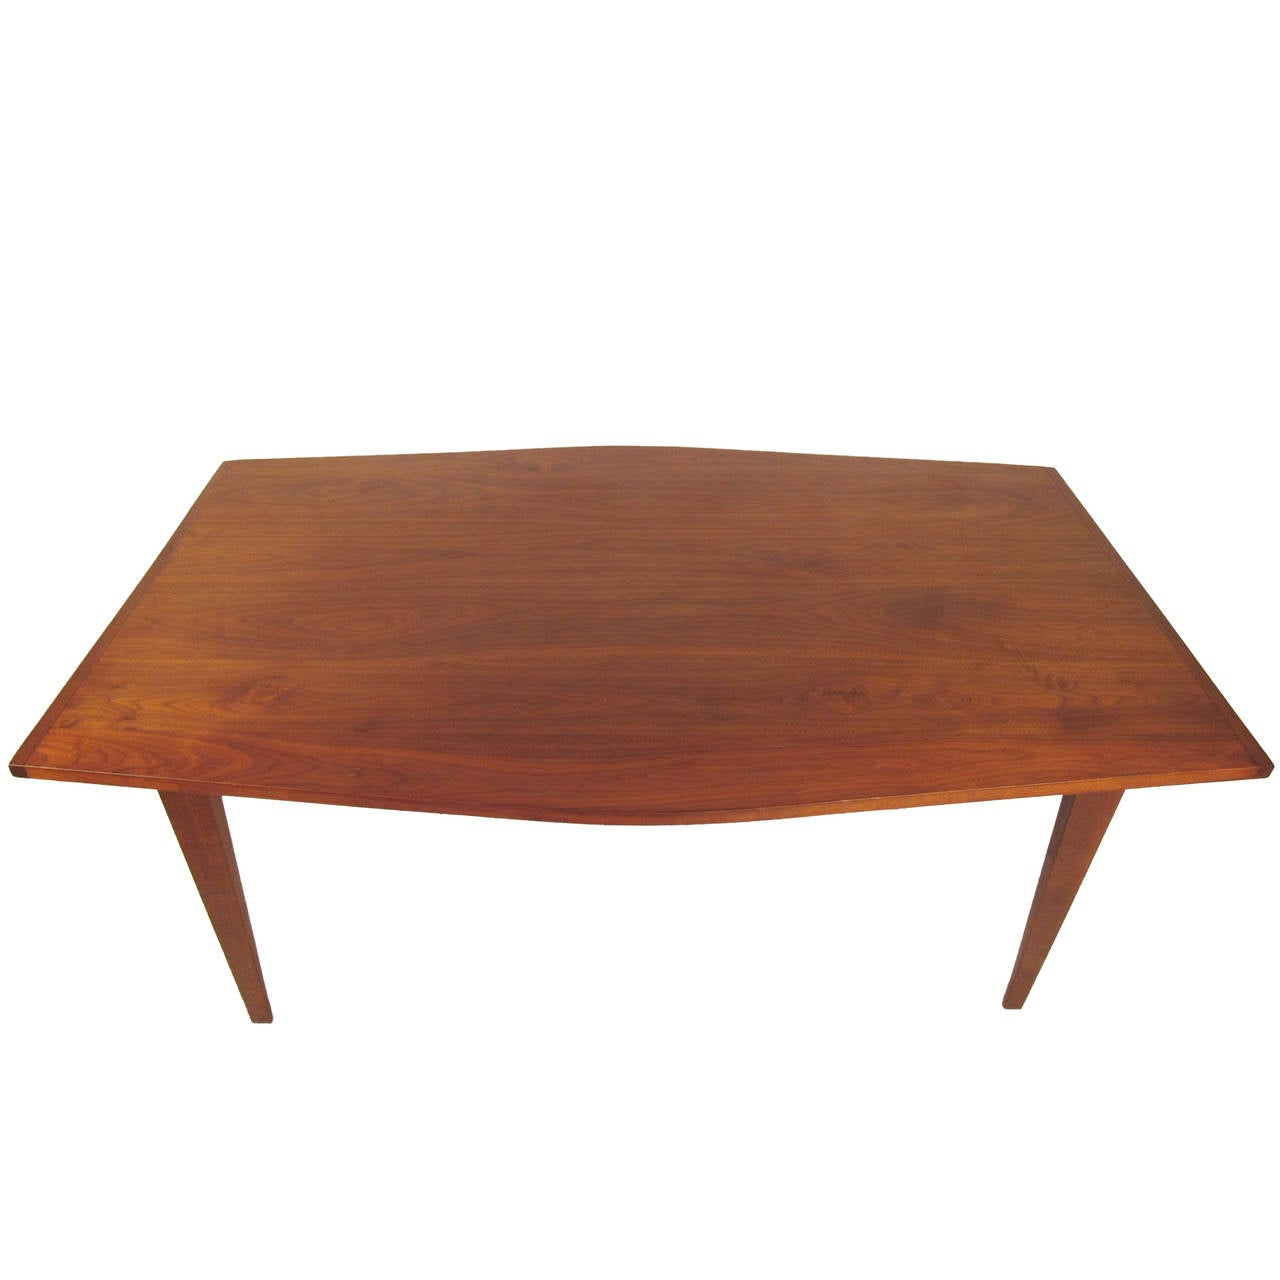 Mid century modern angled dining table for sale at 1stdibs for Mid century modern dining table